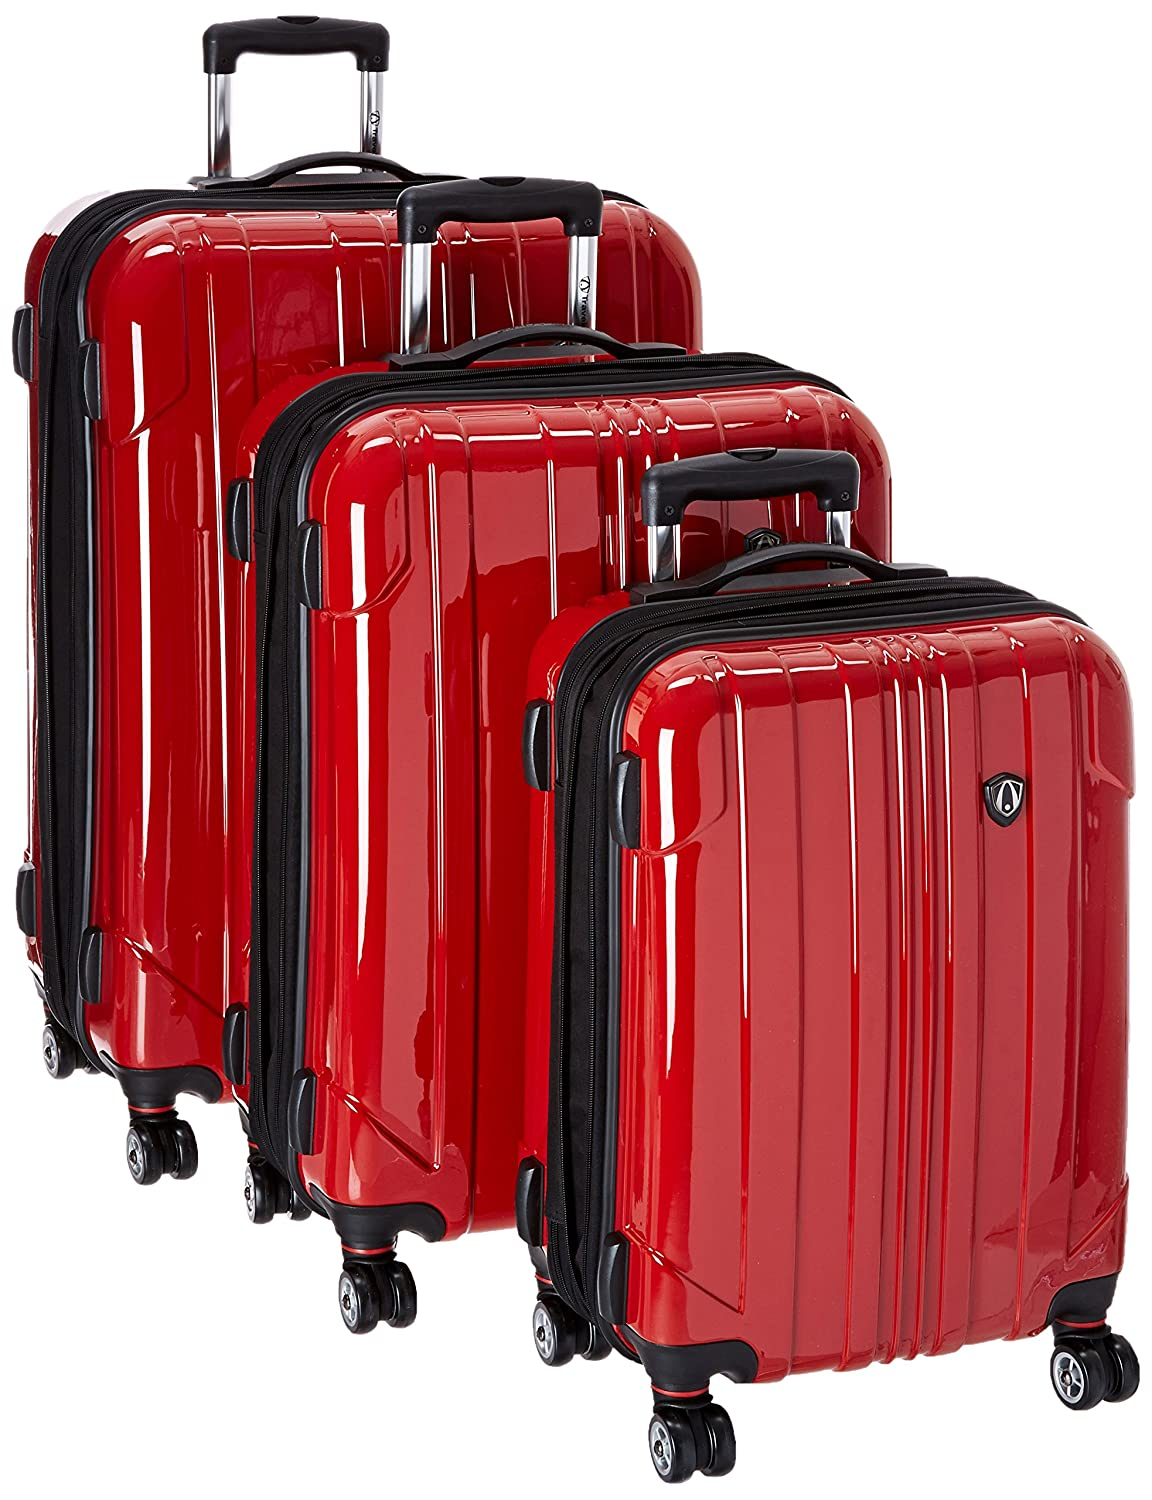 Dropship TC8000R 21//25//29 Traveler/'s Choice Sedona 8-Wheels Polycarbonate Hardside Expandable Spinner 3-Piece Luggage Set Red Red 21//25//29 Travelers Choice